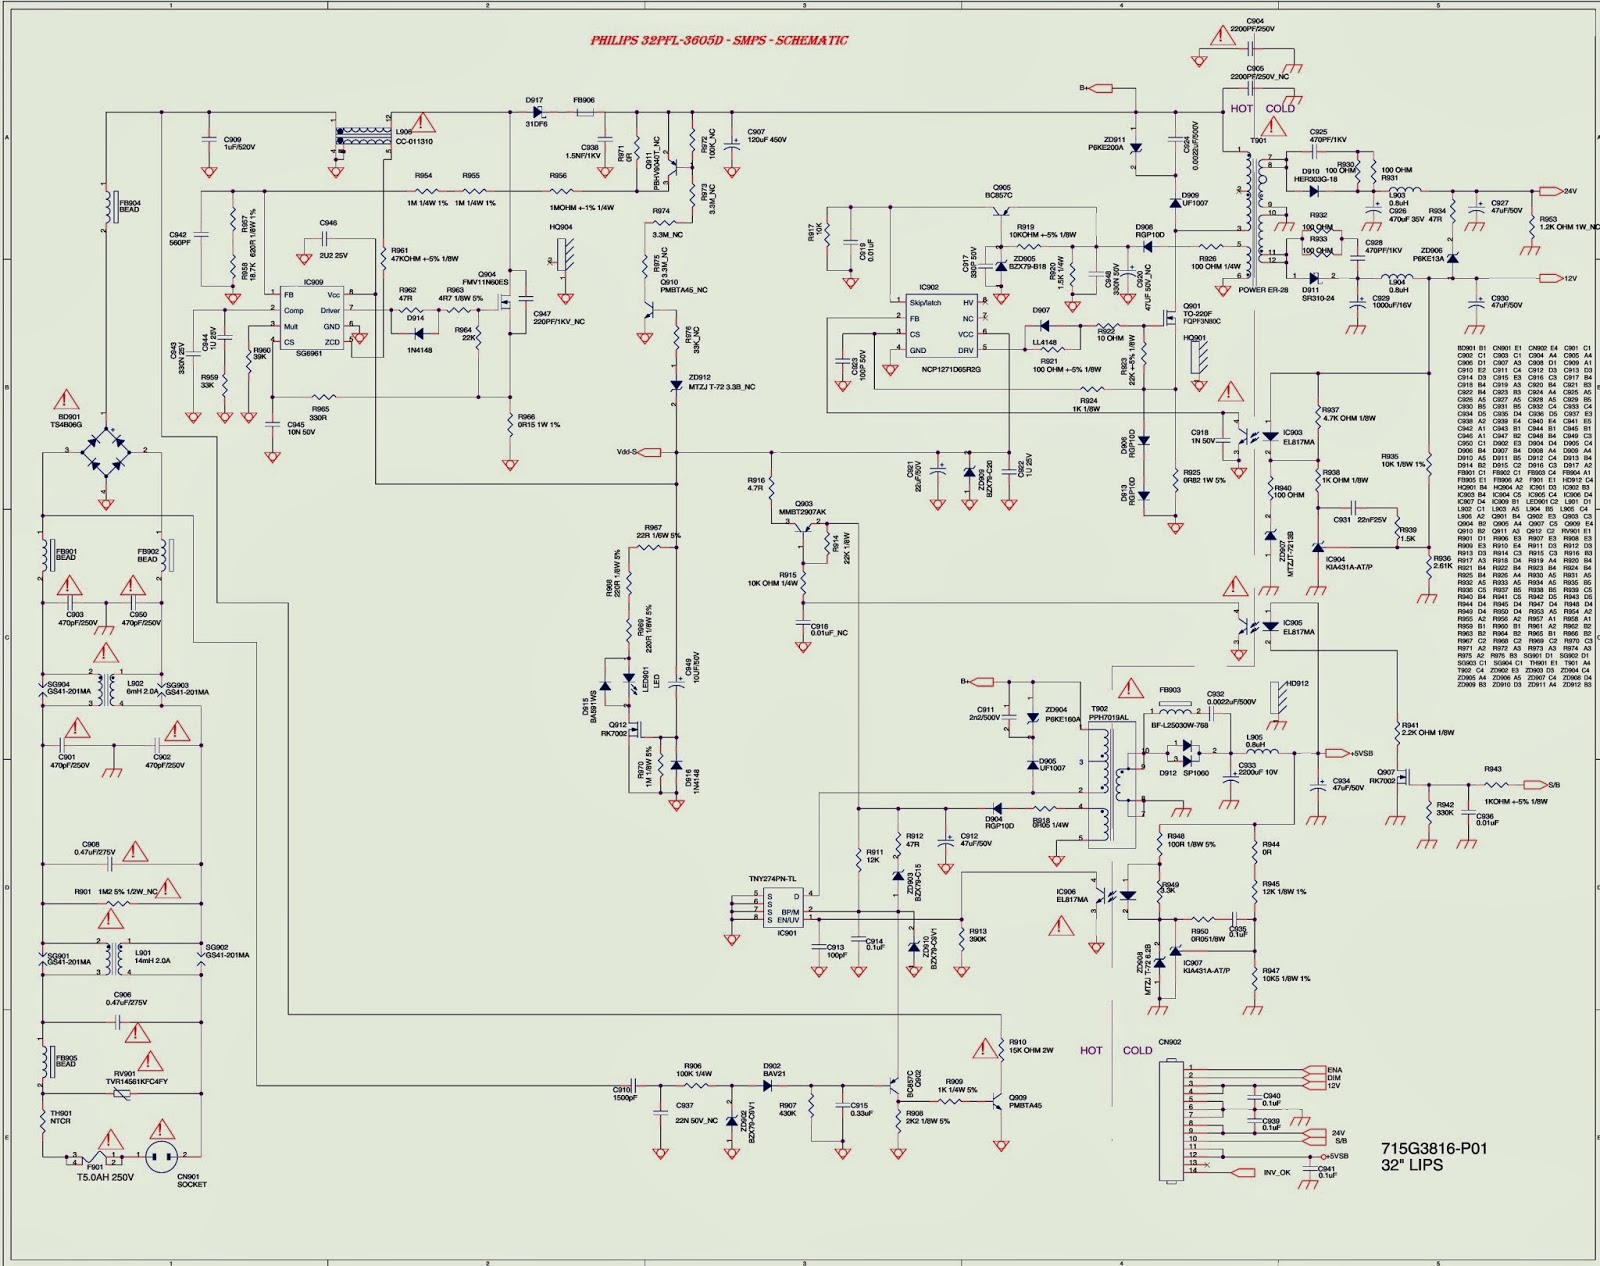 smps schematic diagram 1970 ford f250 wiring philips 32pfl3605d power supply regulator